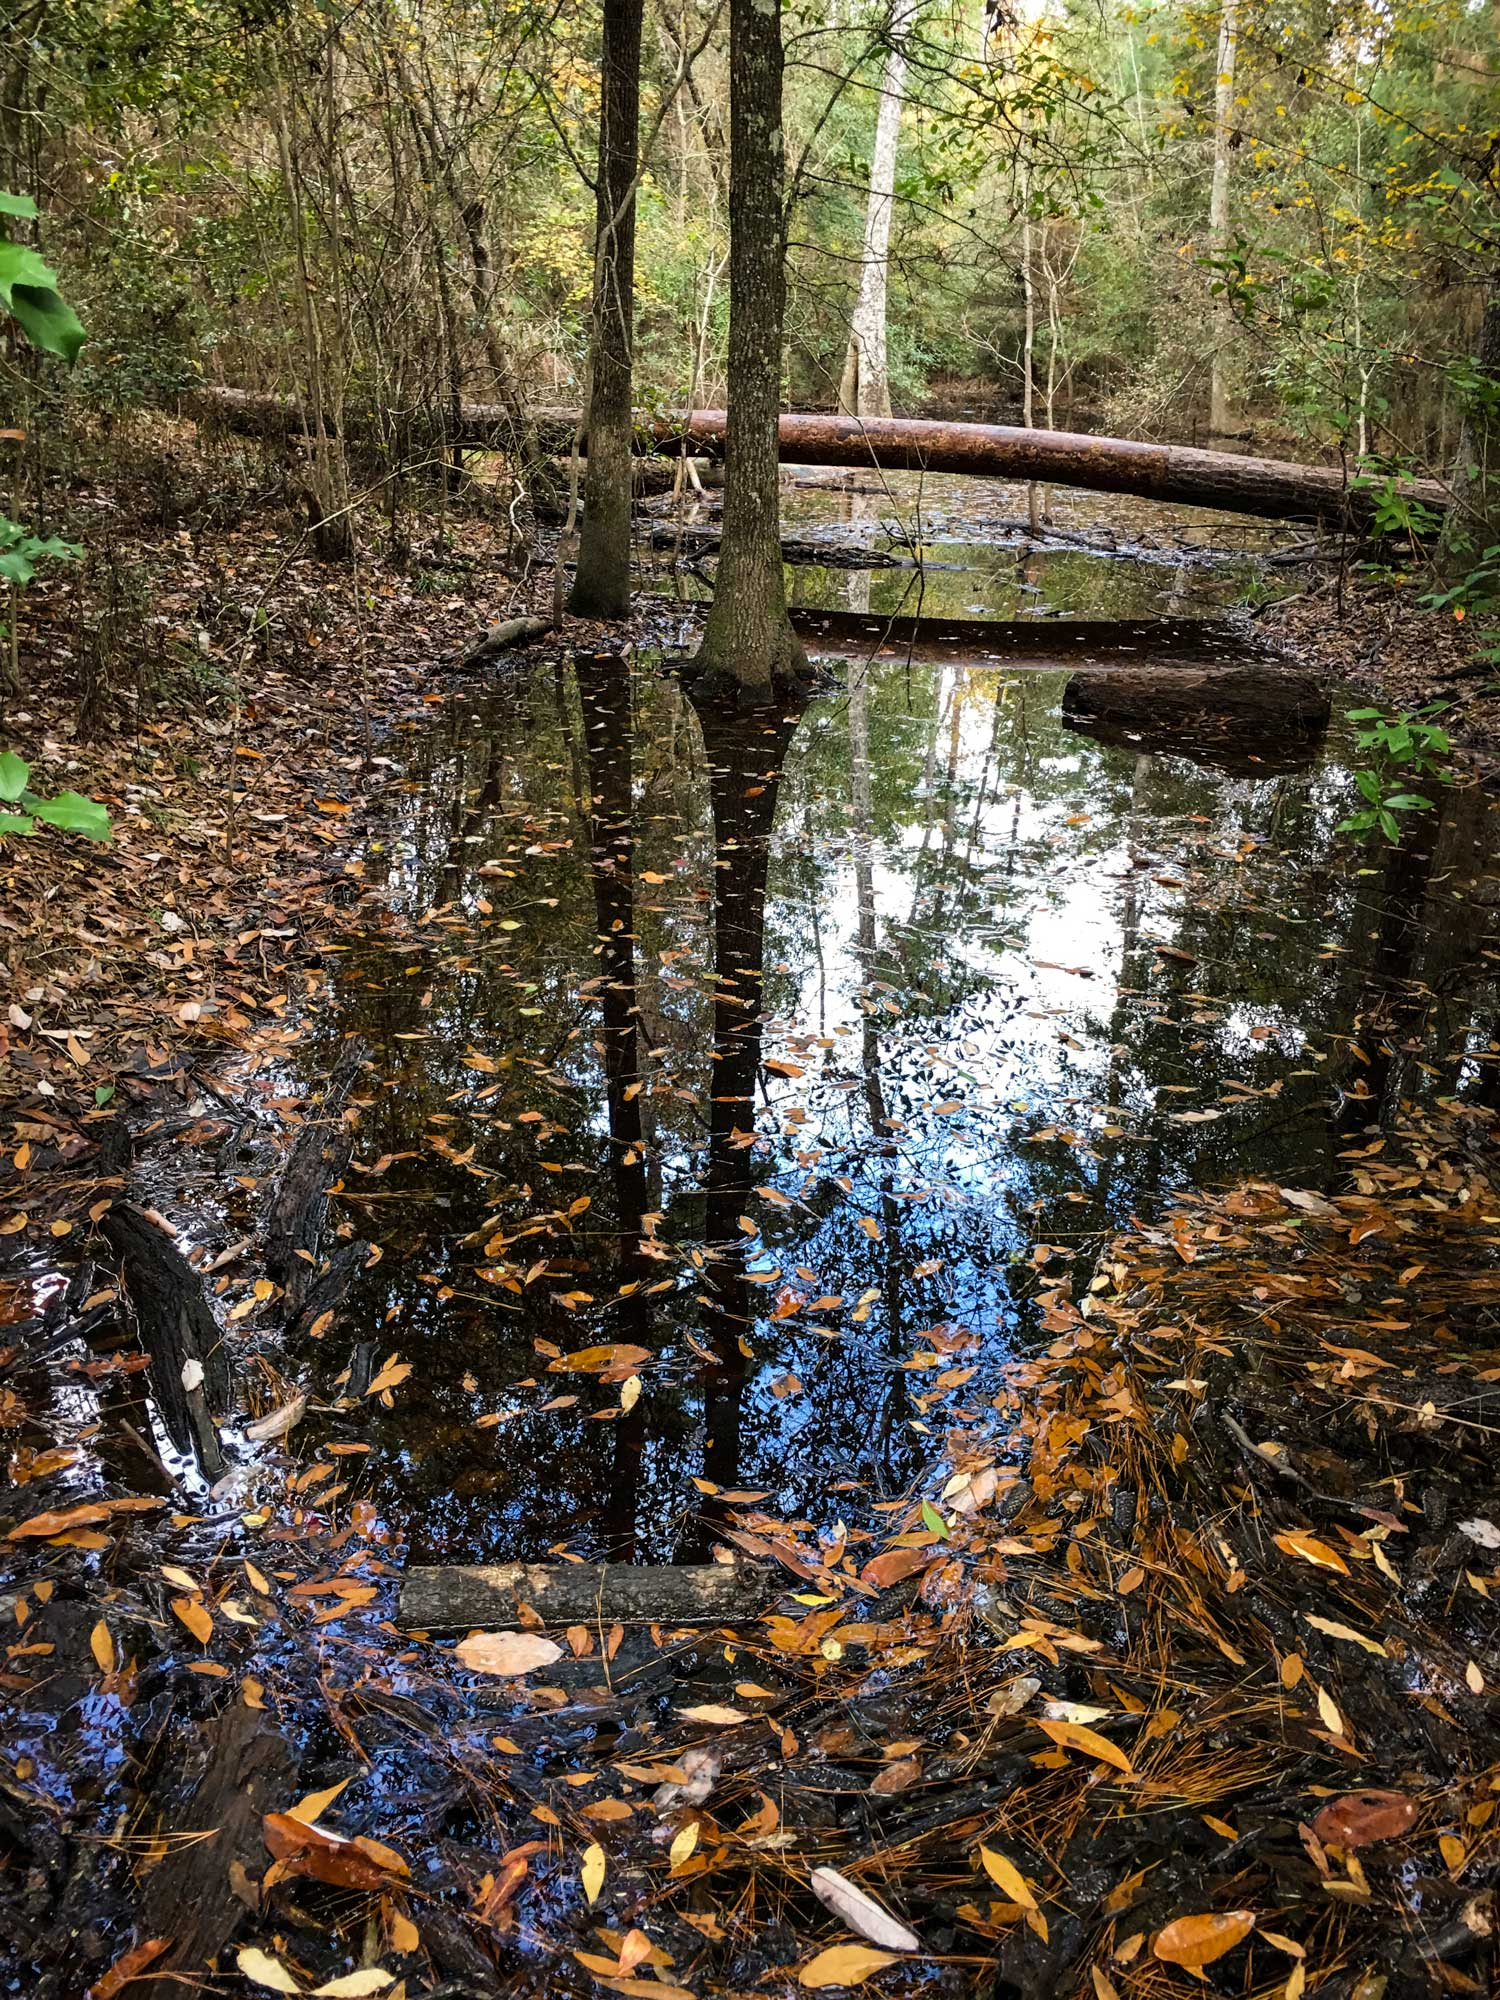 Slough - swamp covered in leaves